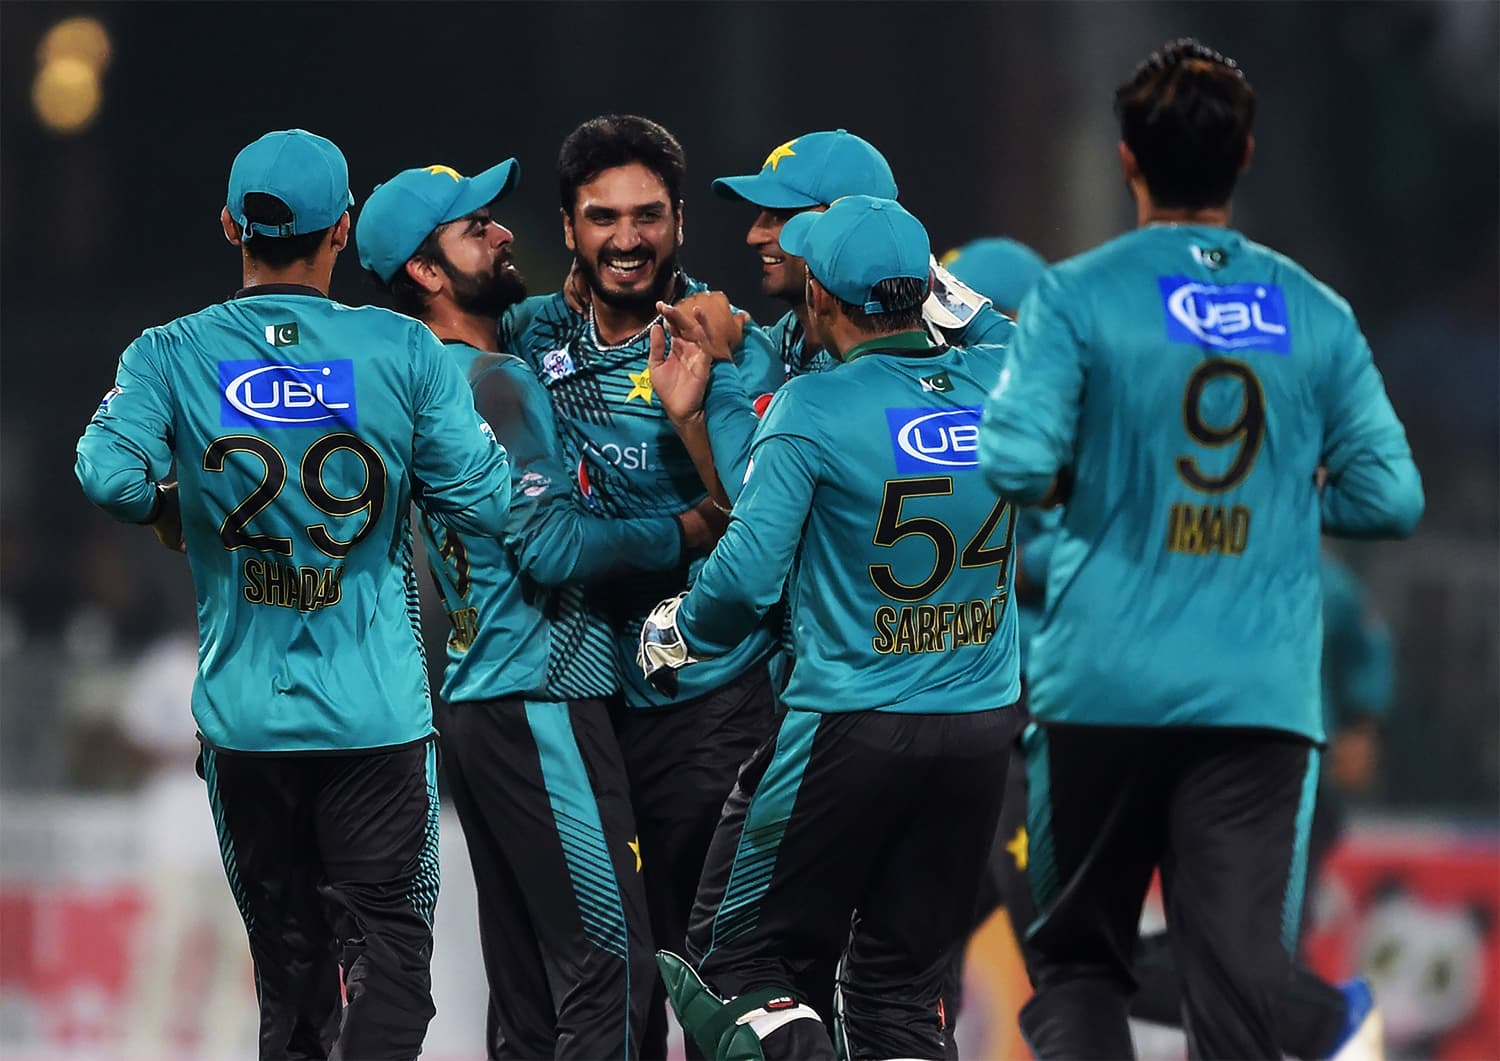 Rumman Raees (C) celebrates with teammate Ahmed Shehzad after taking the wicket of World XI batsman Tamim Iqbal. ─AFP